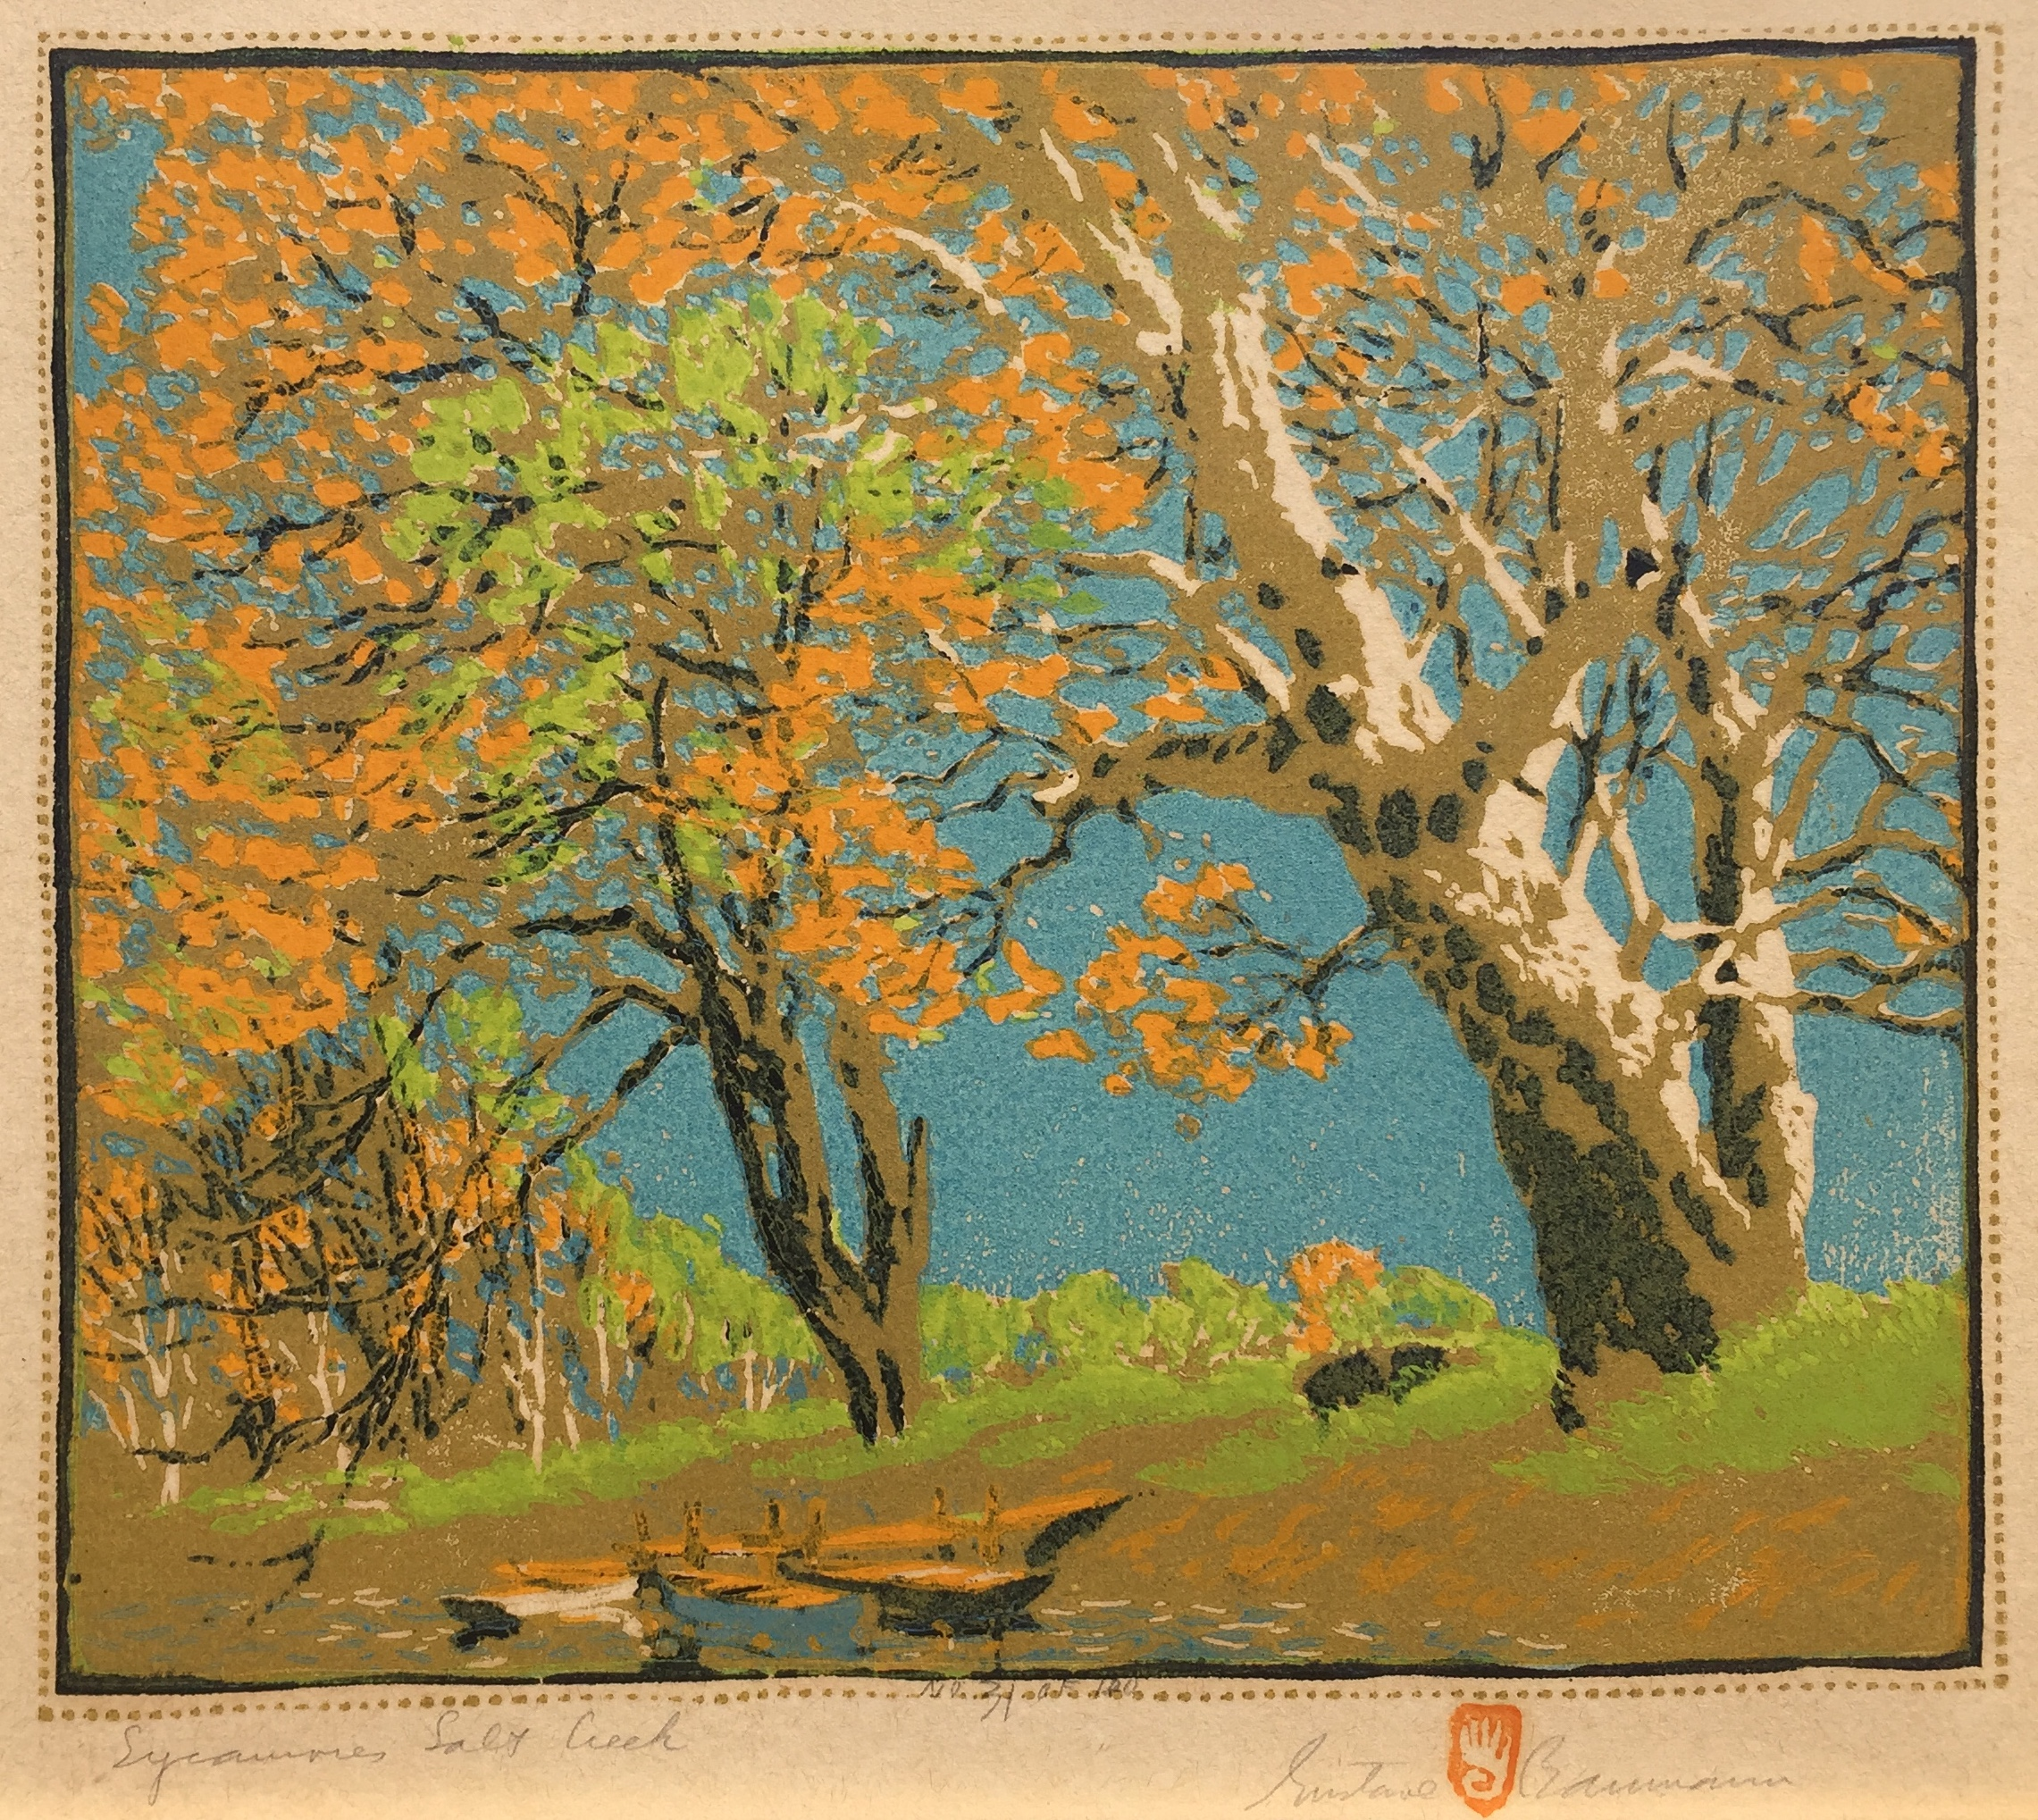 Sycamores, Salt Creek